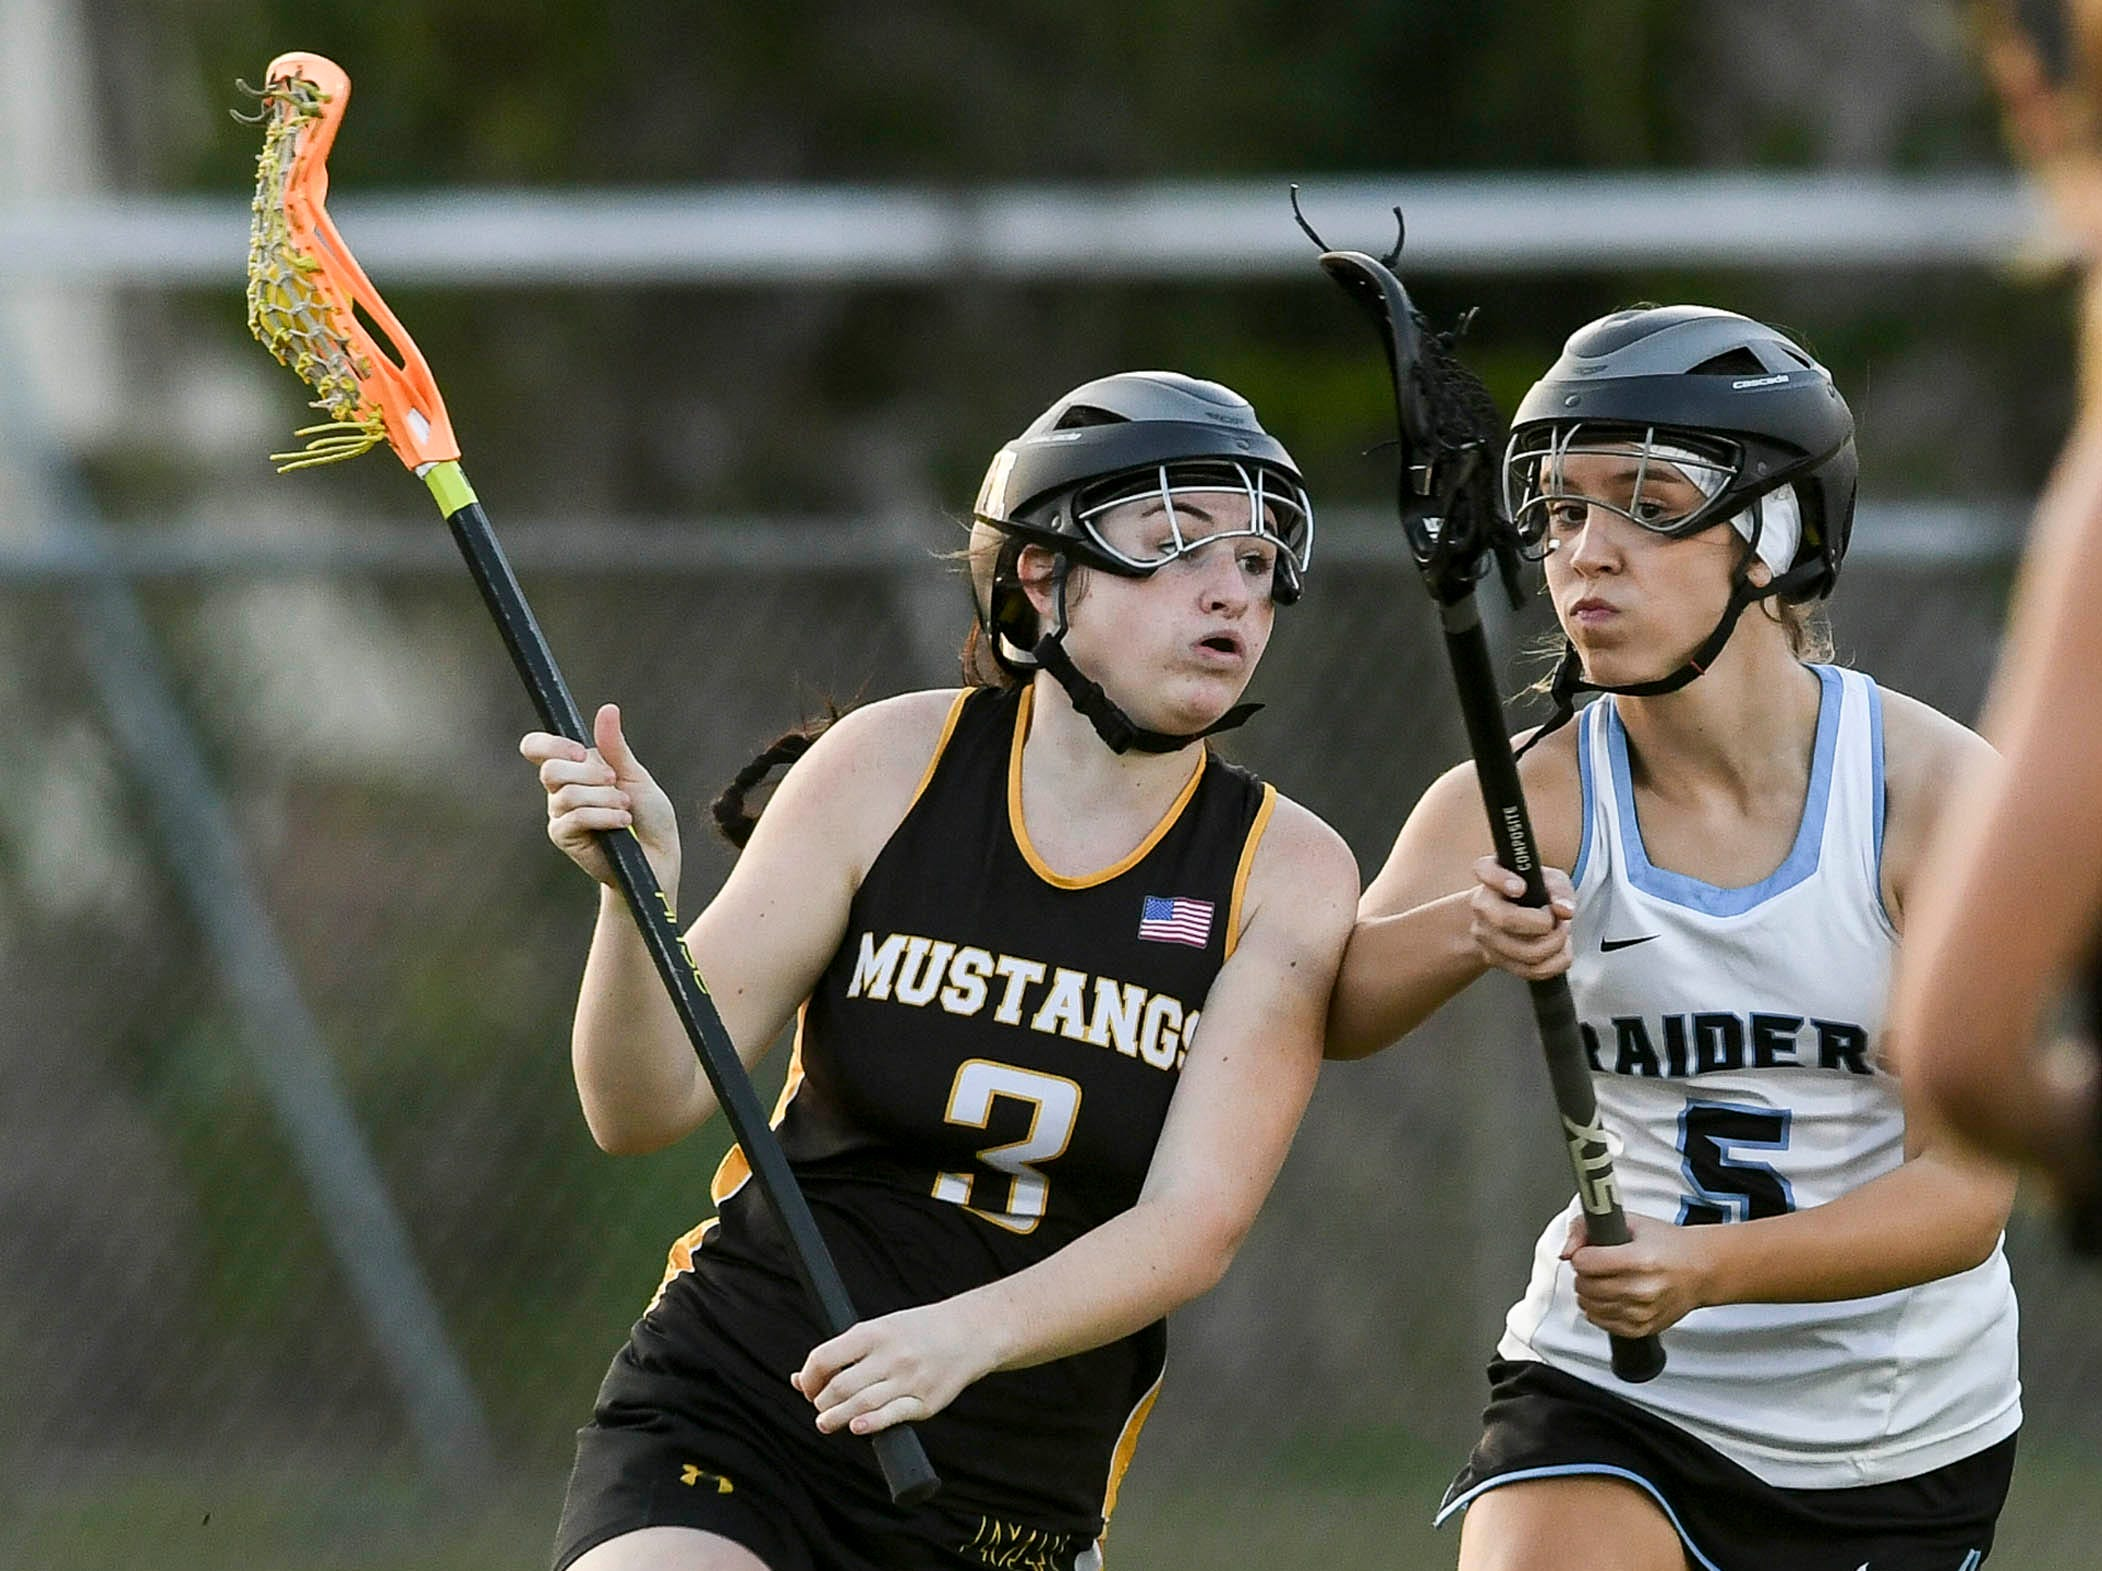 Maddie Brake of Merritt Island is shadowed by Hope Campbell of Rockledge during Tuesday's game.